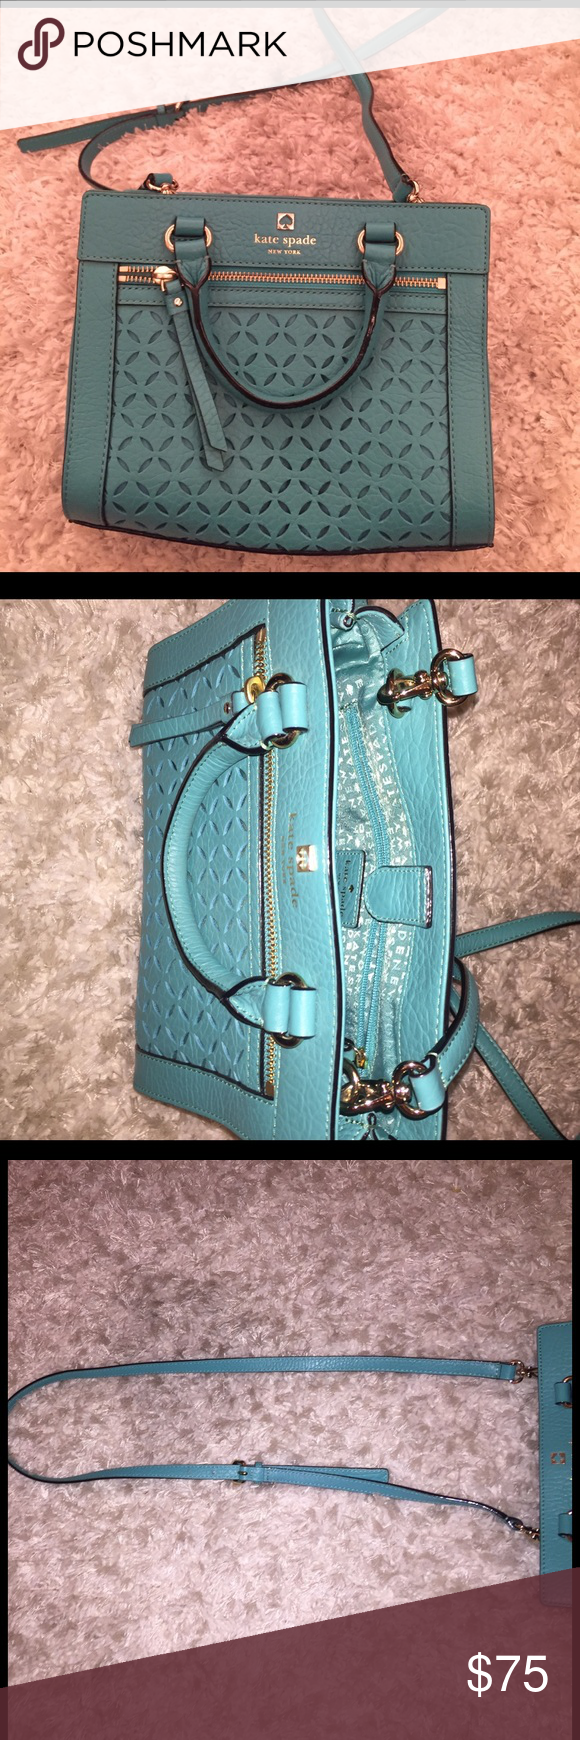 Crossbody Kate Spade purse Turquoise detailed cross body kate spade Bags Crossbody Bags